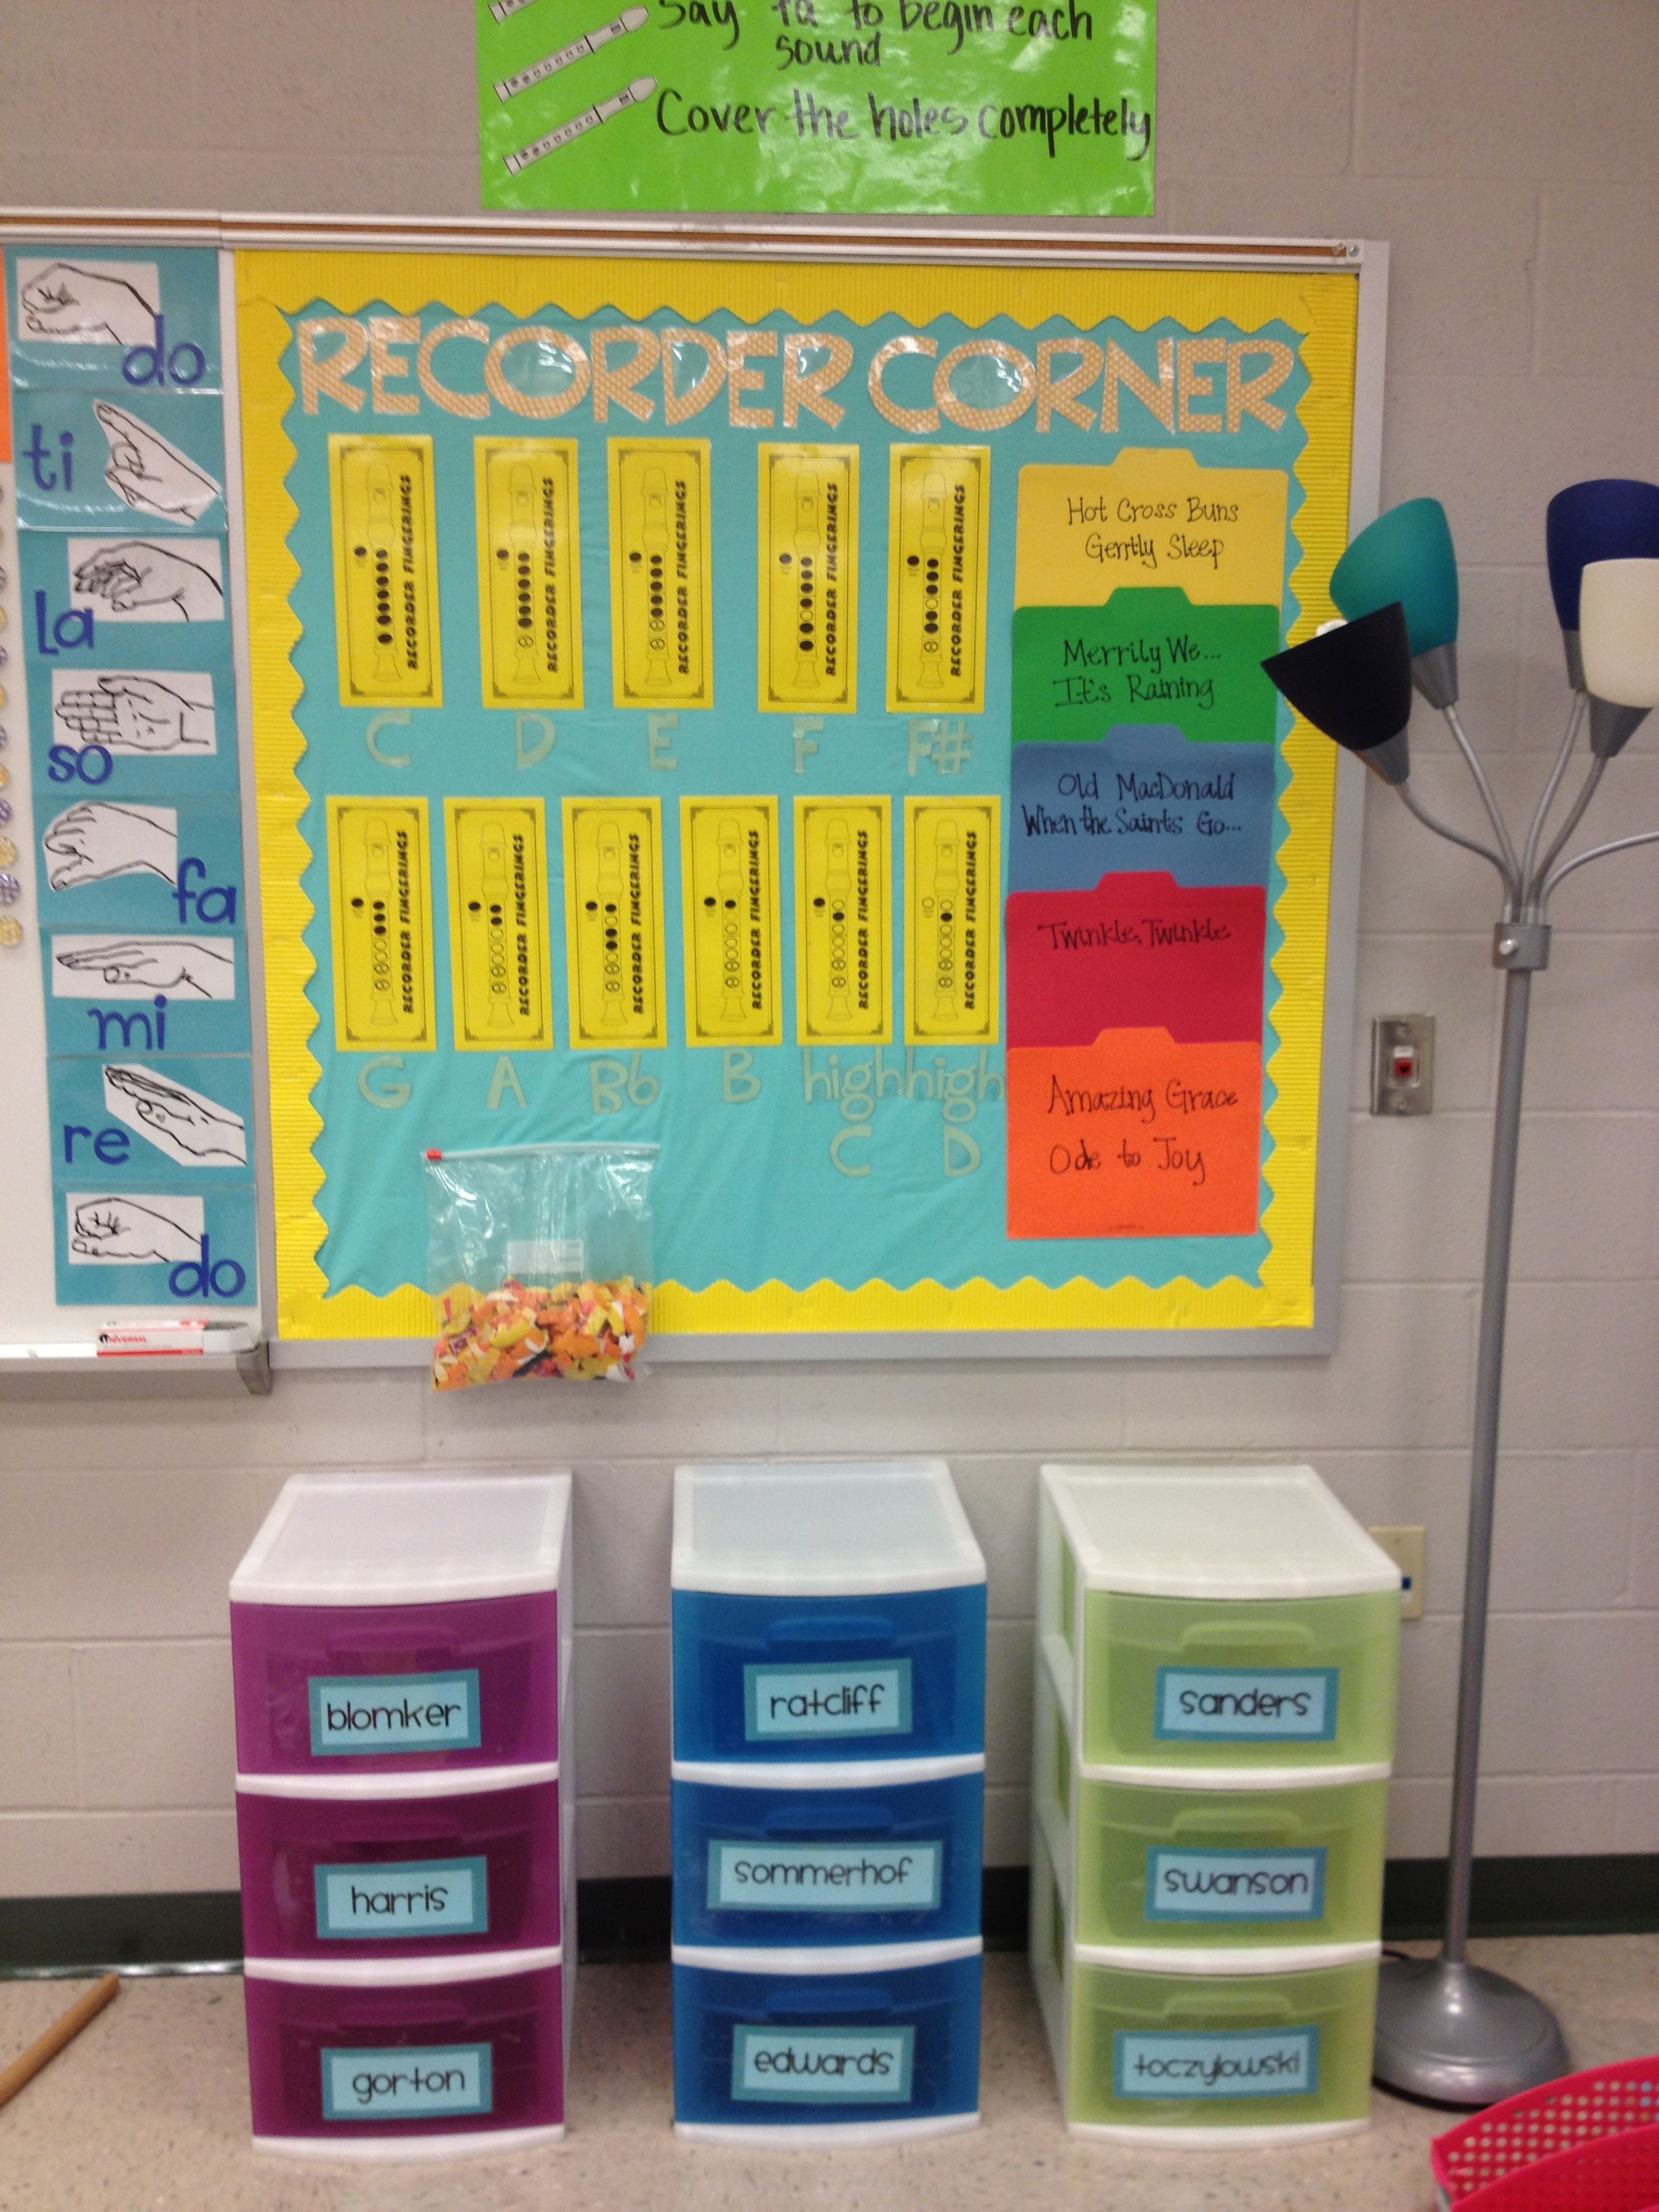 Store Recorders In Plastic Drawers Definitely Doing This For Room Recorder Coming Year Way The Kids Have Somewhere Thats Not Their Locker To Keep